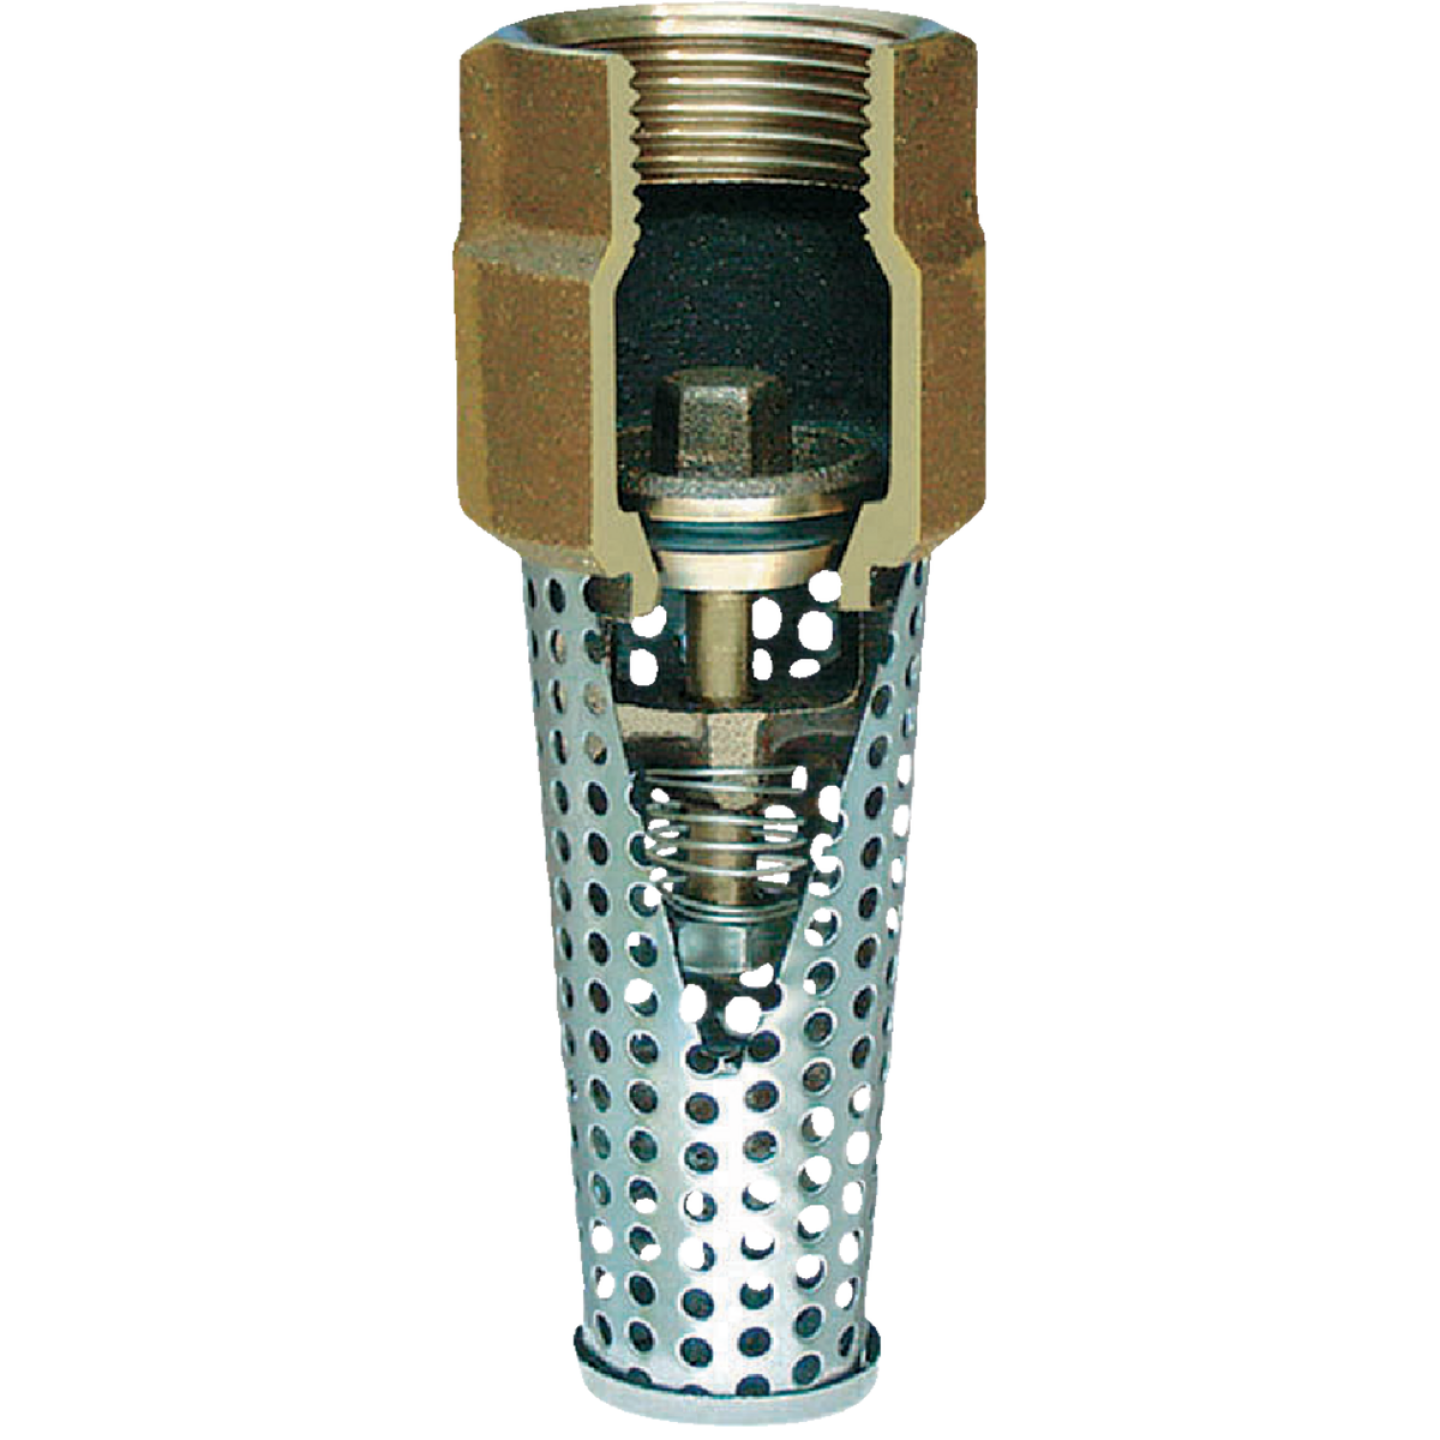 Simmons 1-1/4 In. Silicon Bronze Foot Valve, Lead Free Image 1